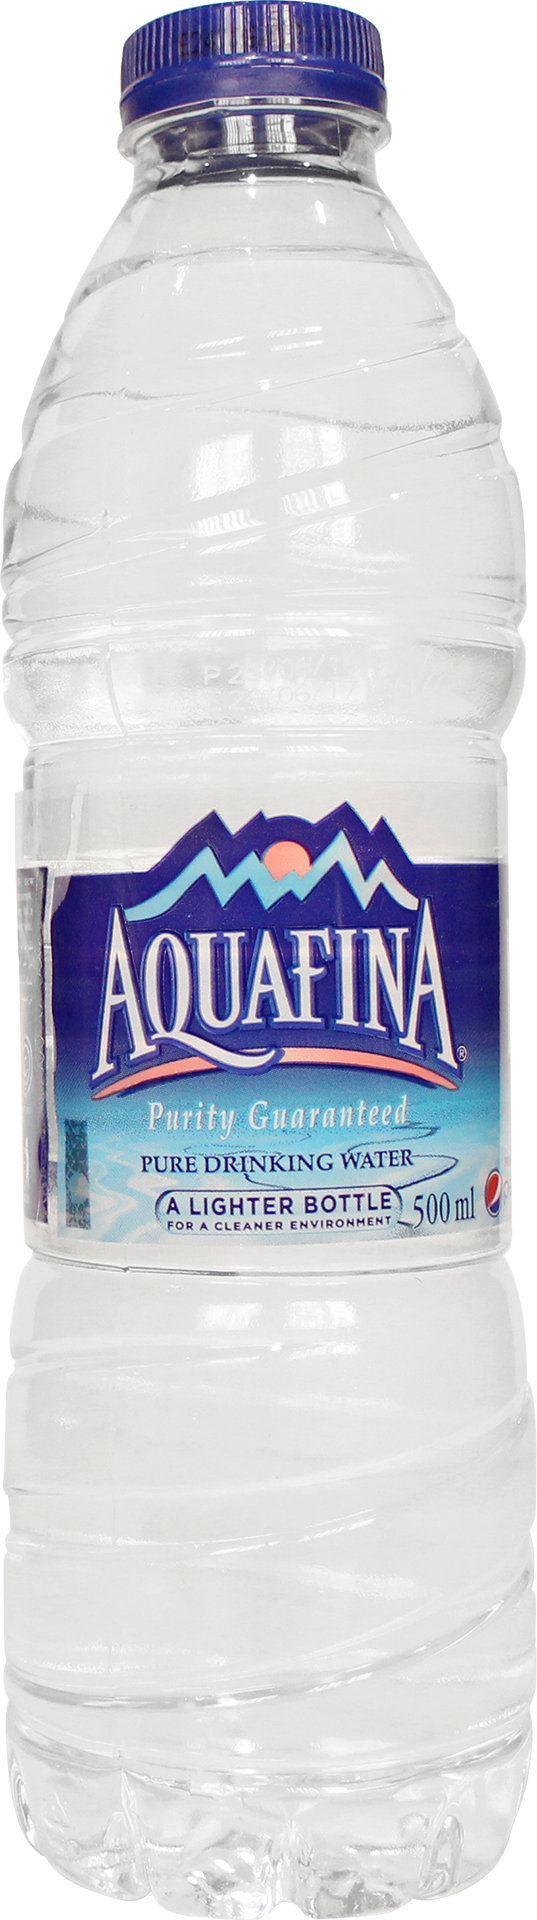 Aquafina 500 ml